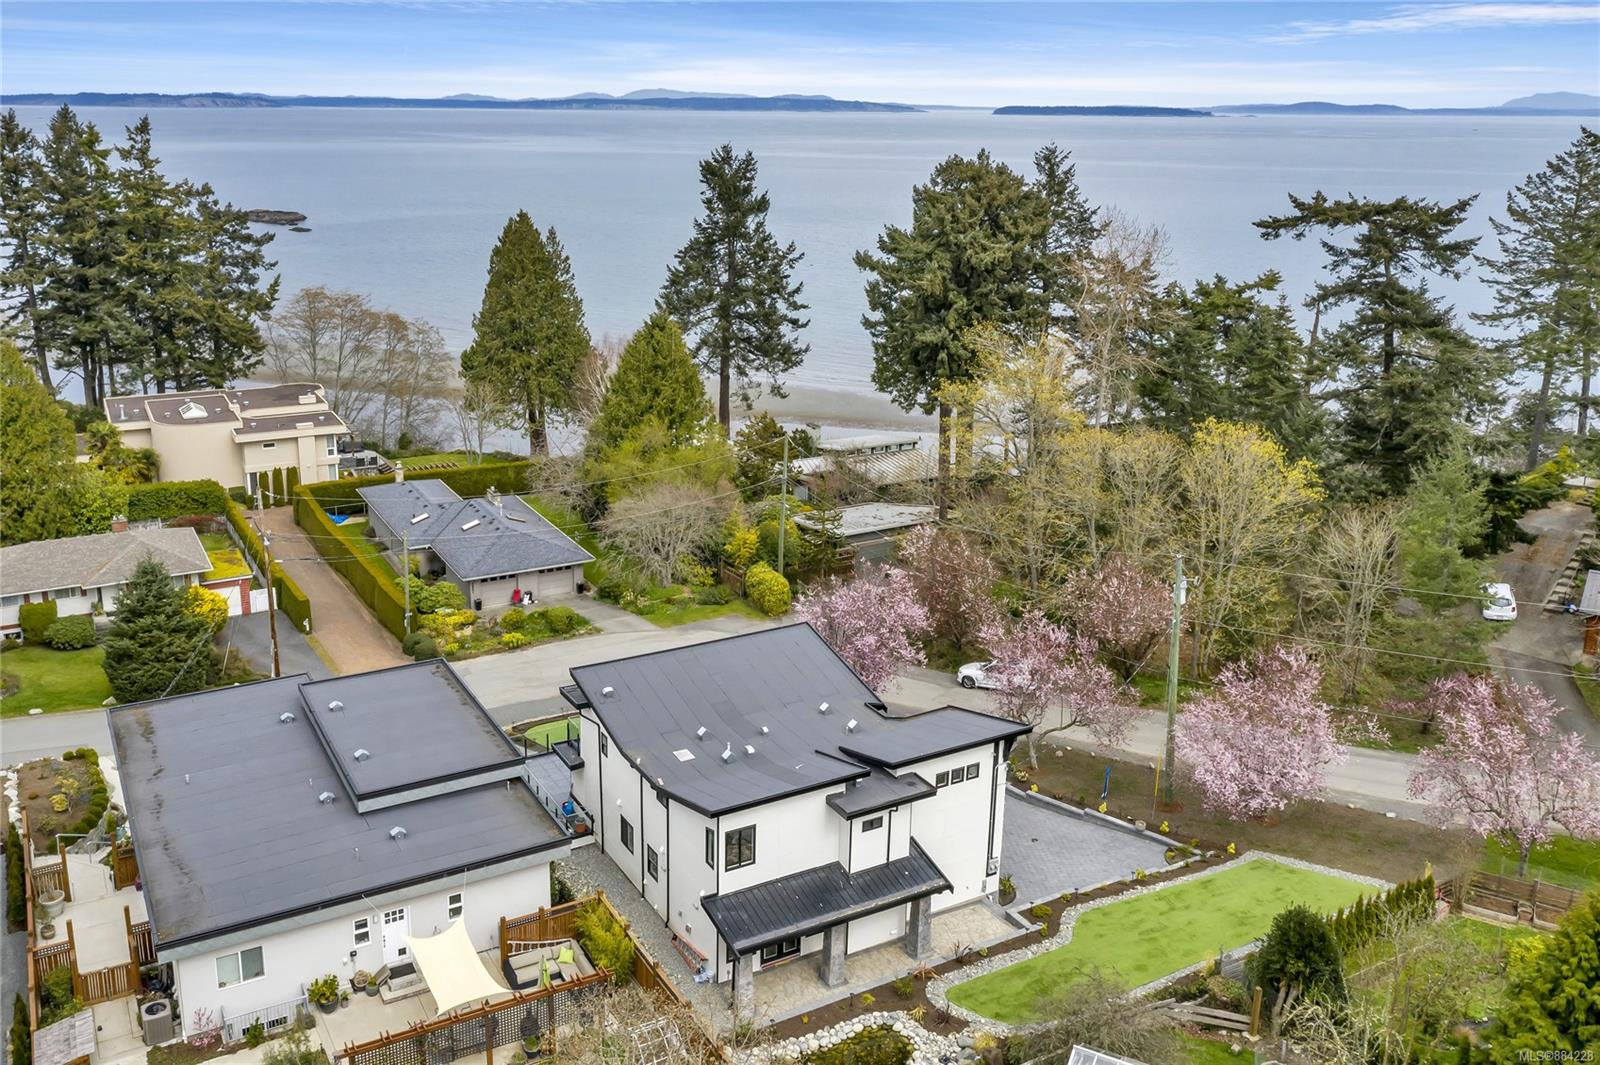 PRICE Improved! Incredible new build in stunning Cordova Bay! Located on a quiet cul-de-sac, this gorgeous homes is located on a corner lot with partial ocean views. Master features an enormous walk in closet, waterfall shower, and soaker tub surrounded by high end finishings and tasteful flooring throughout. Dual ovens, gas cooktop, and high gloss granite flooring await you in the spacious chef's kitchen, and a breathtaking patio extends off the main floor with enough space to host the neighbourhood! Other features include a gas fireplace, high end appliances, and decorative light fixtures. Downstairs is your playground, with a media room that's sure to impress! Nestled in a neighbourhood of lovely family homes the outdoor offerings are just as luxurious, with manicured landscaping, water features, and a spacious extra wide garage. Close to one of the best waterfront beaches in Victoria, and amenities in Cordova Bay and Broadmead, this home is an absolute island gem!